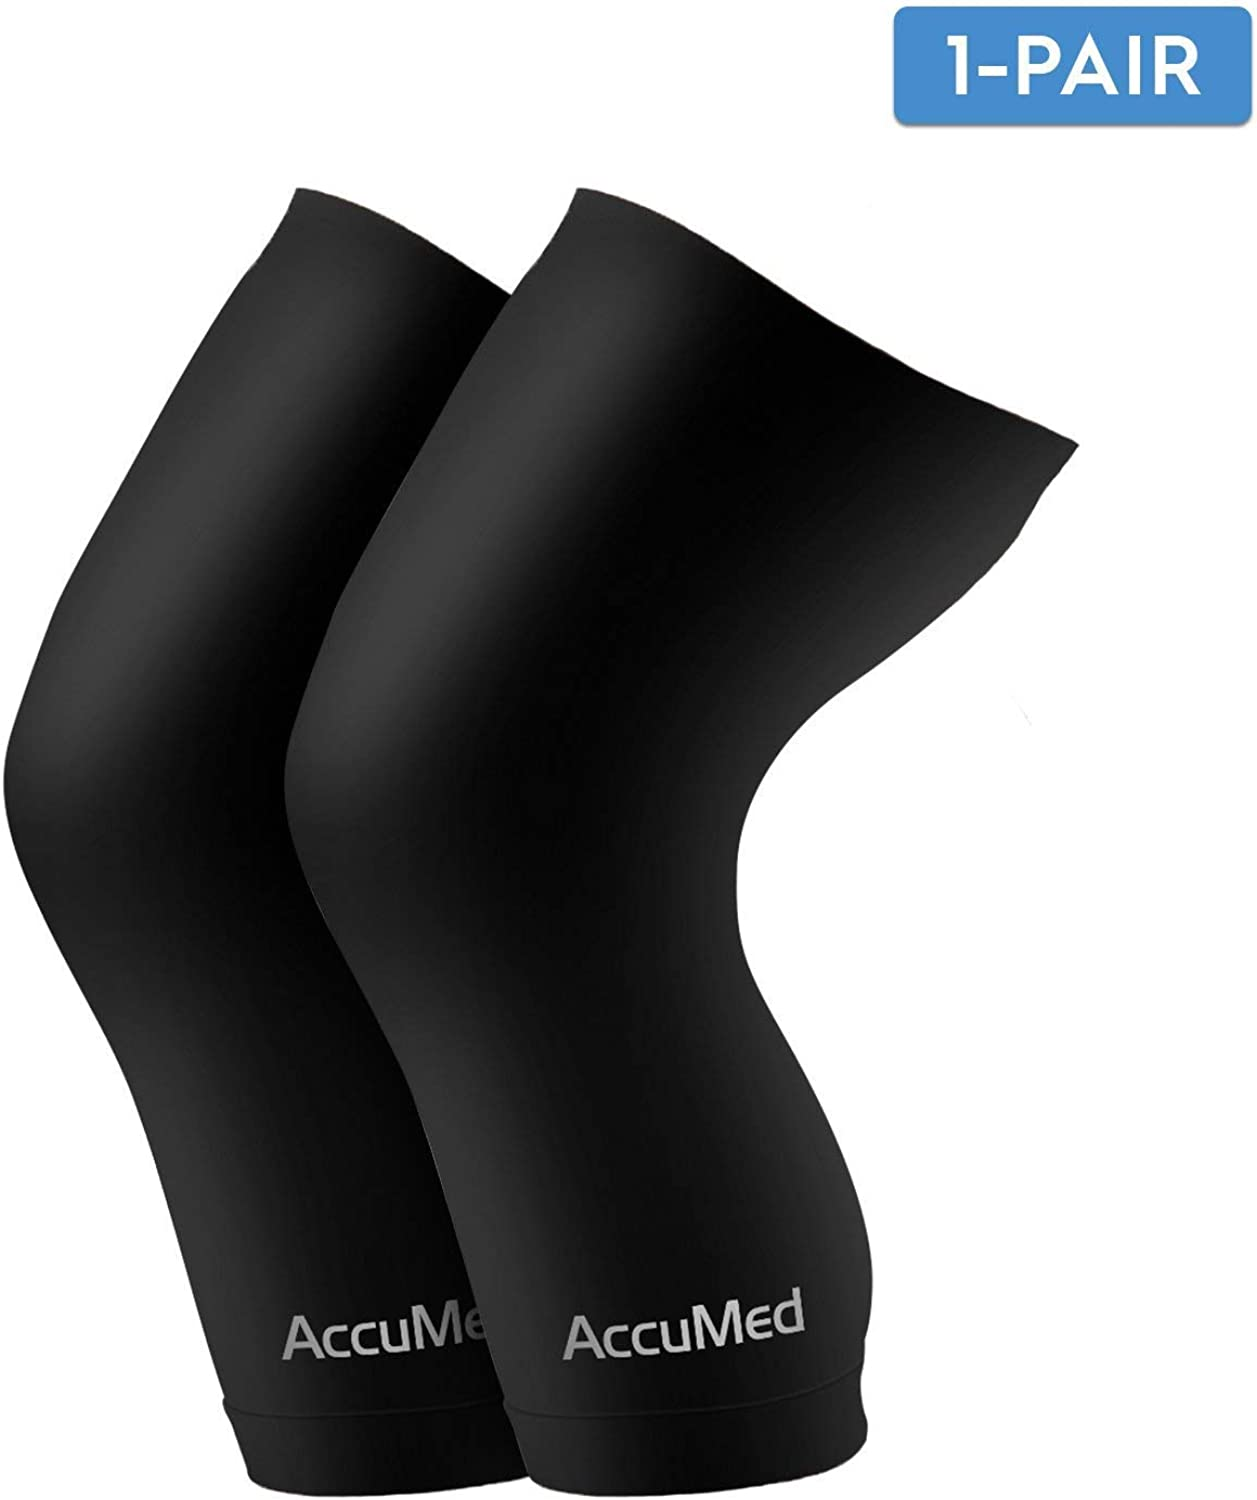 AccuMed Copper Compression Knee Sleeve  Made with Real CopperEmbedded Fiber for Recovery, Pain, Support of Stiff and Sore Muscles Exercise Sports. for Men & Women. 1 Pair Medium (ACKSM).